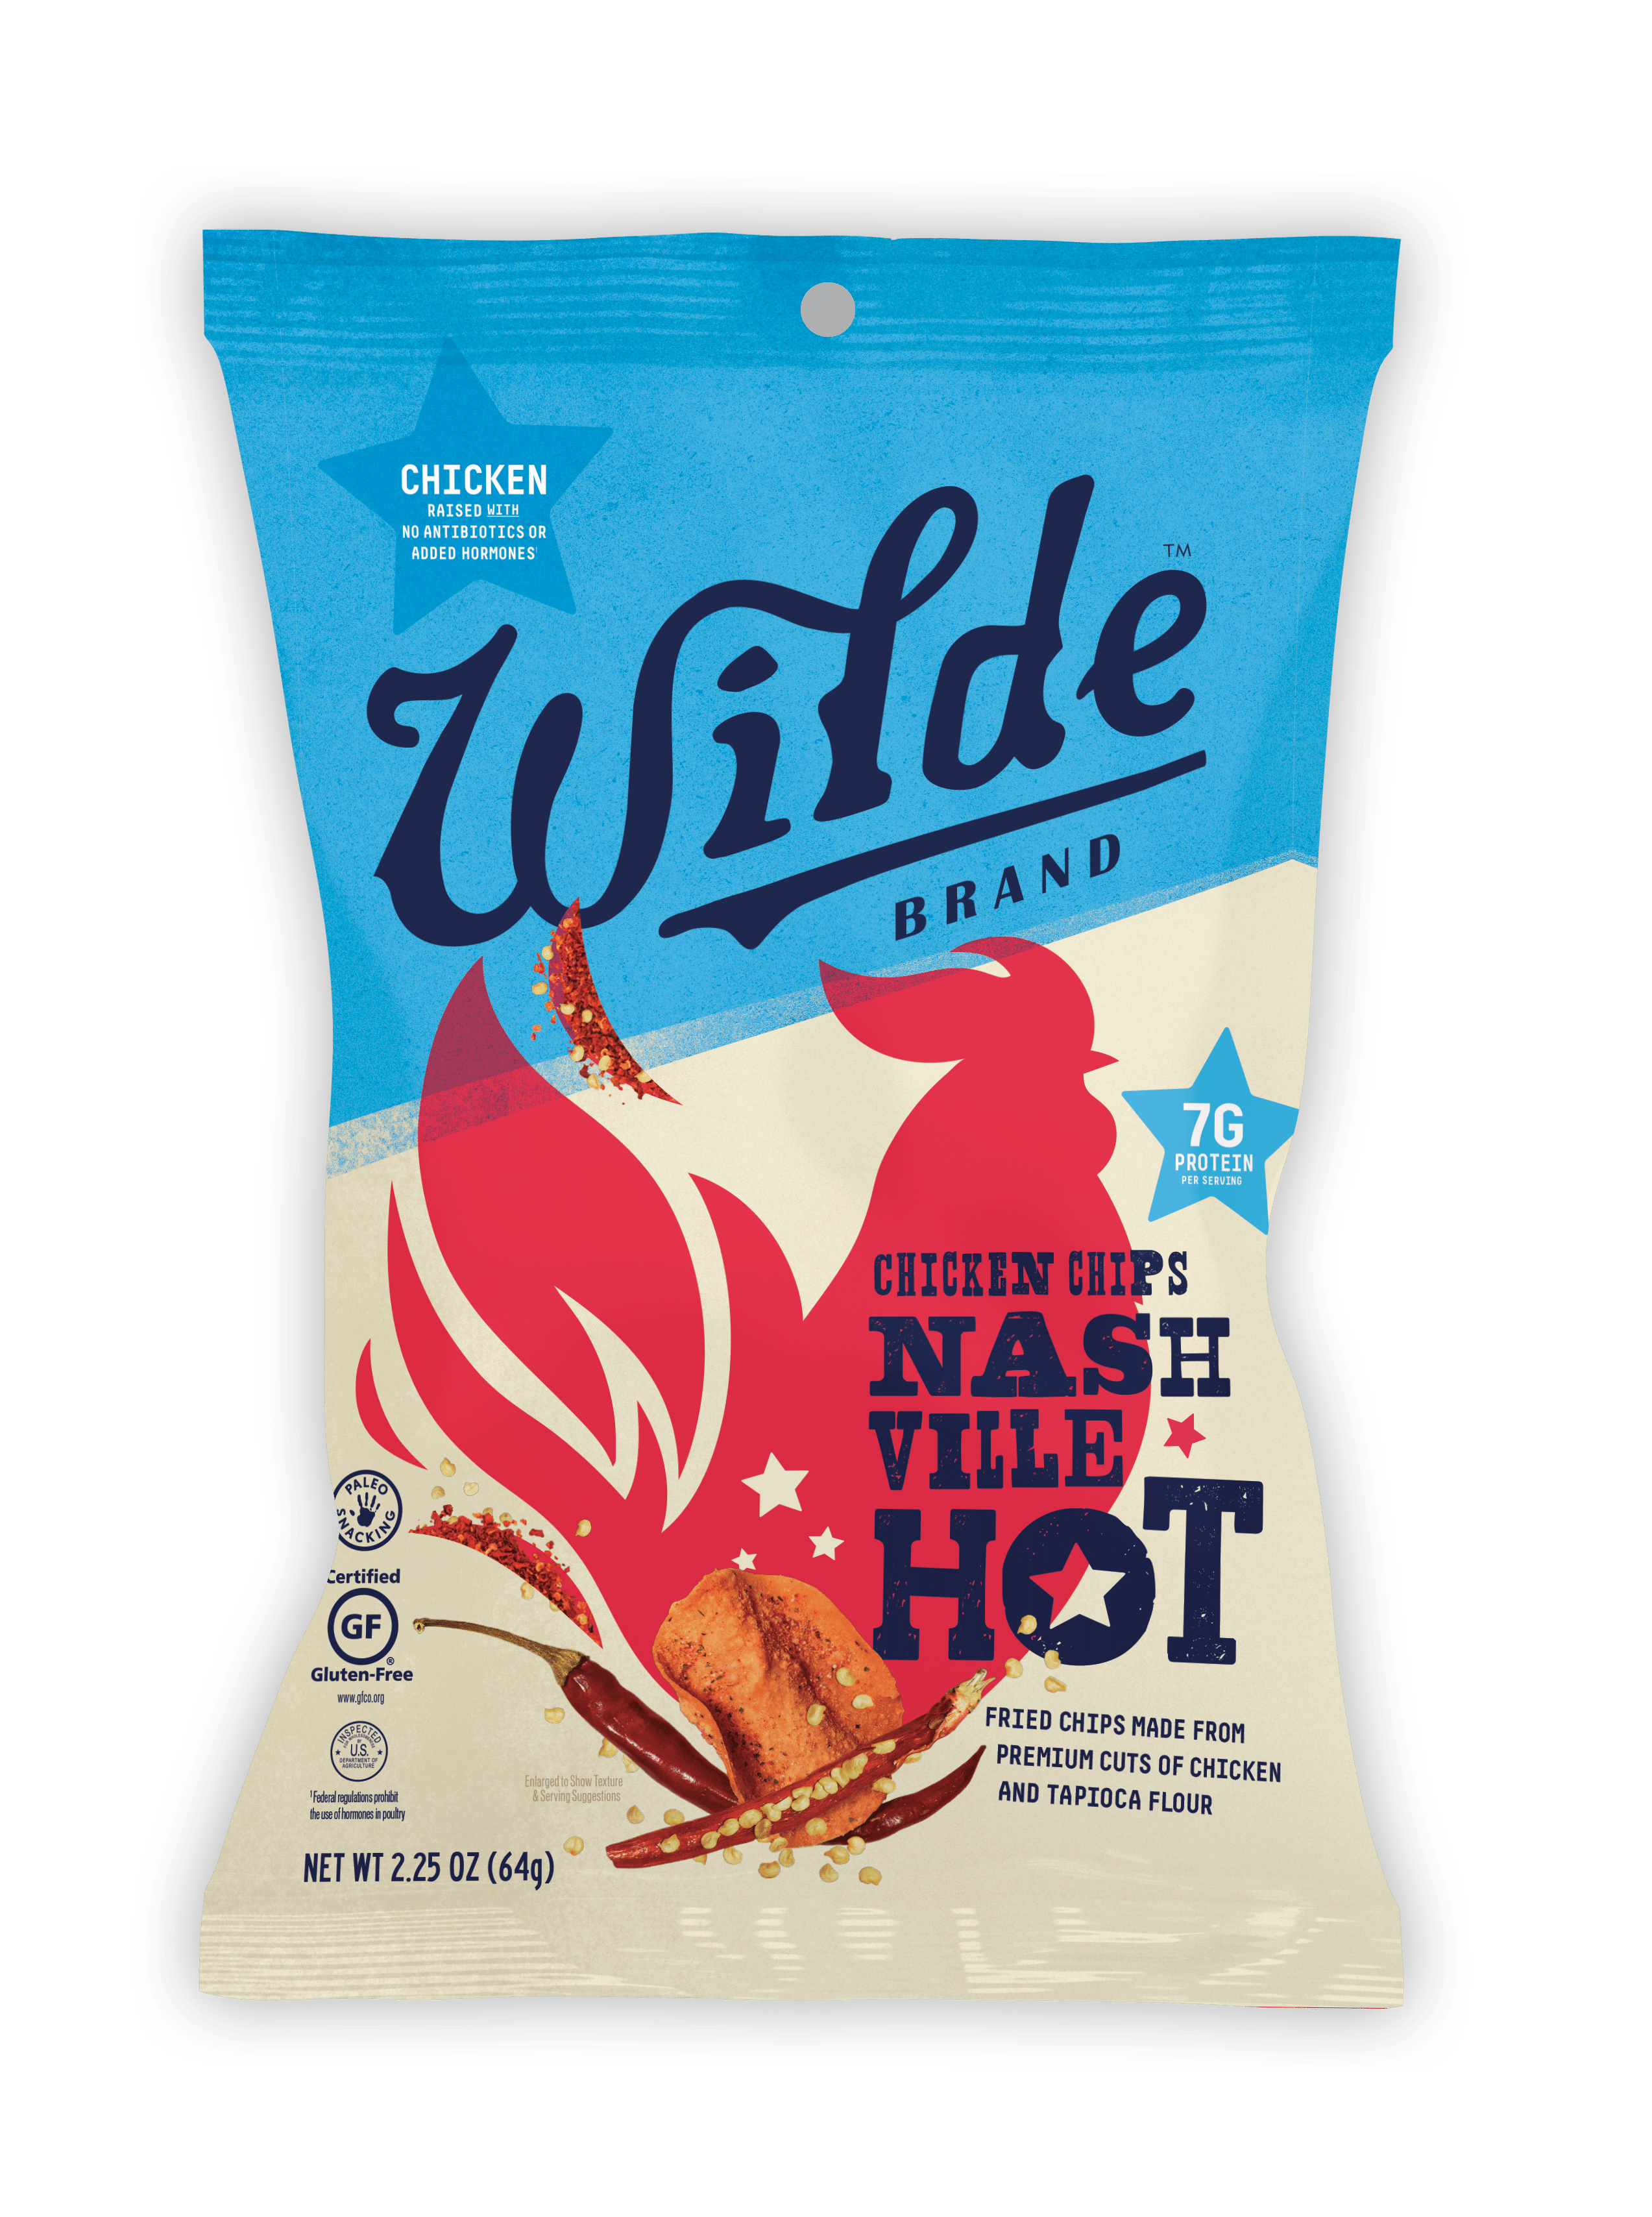 Wilde Chips Announces Three New Chicken Chips Flavors